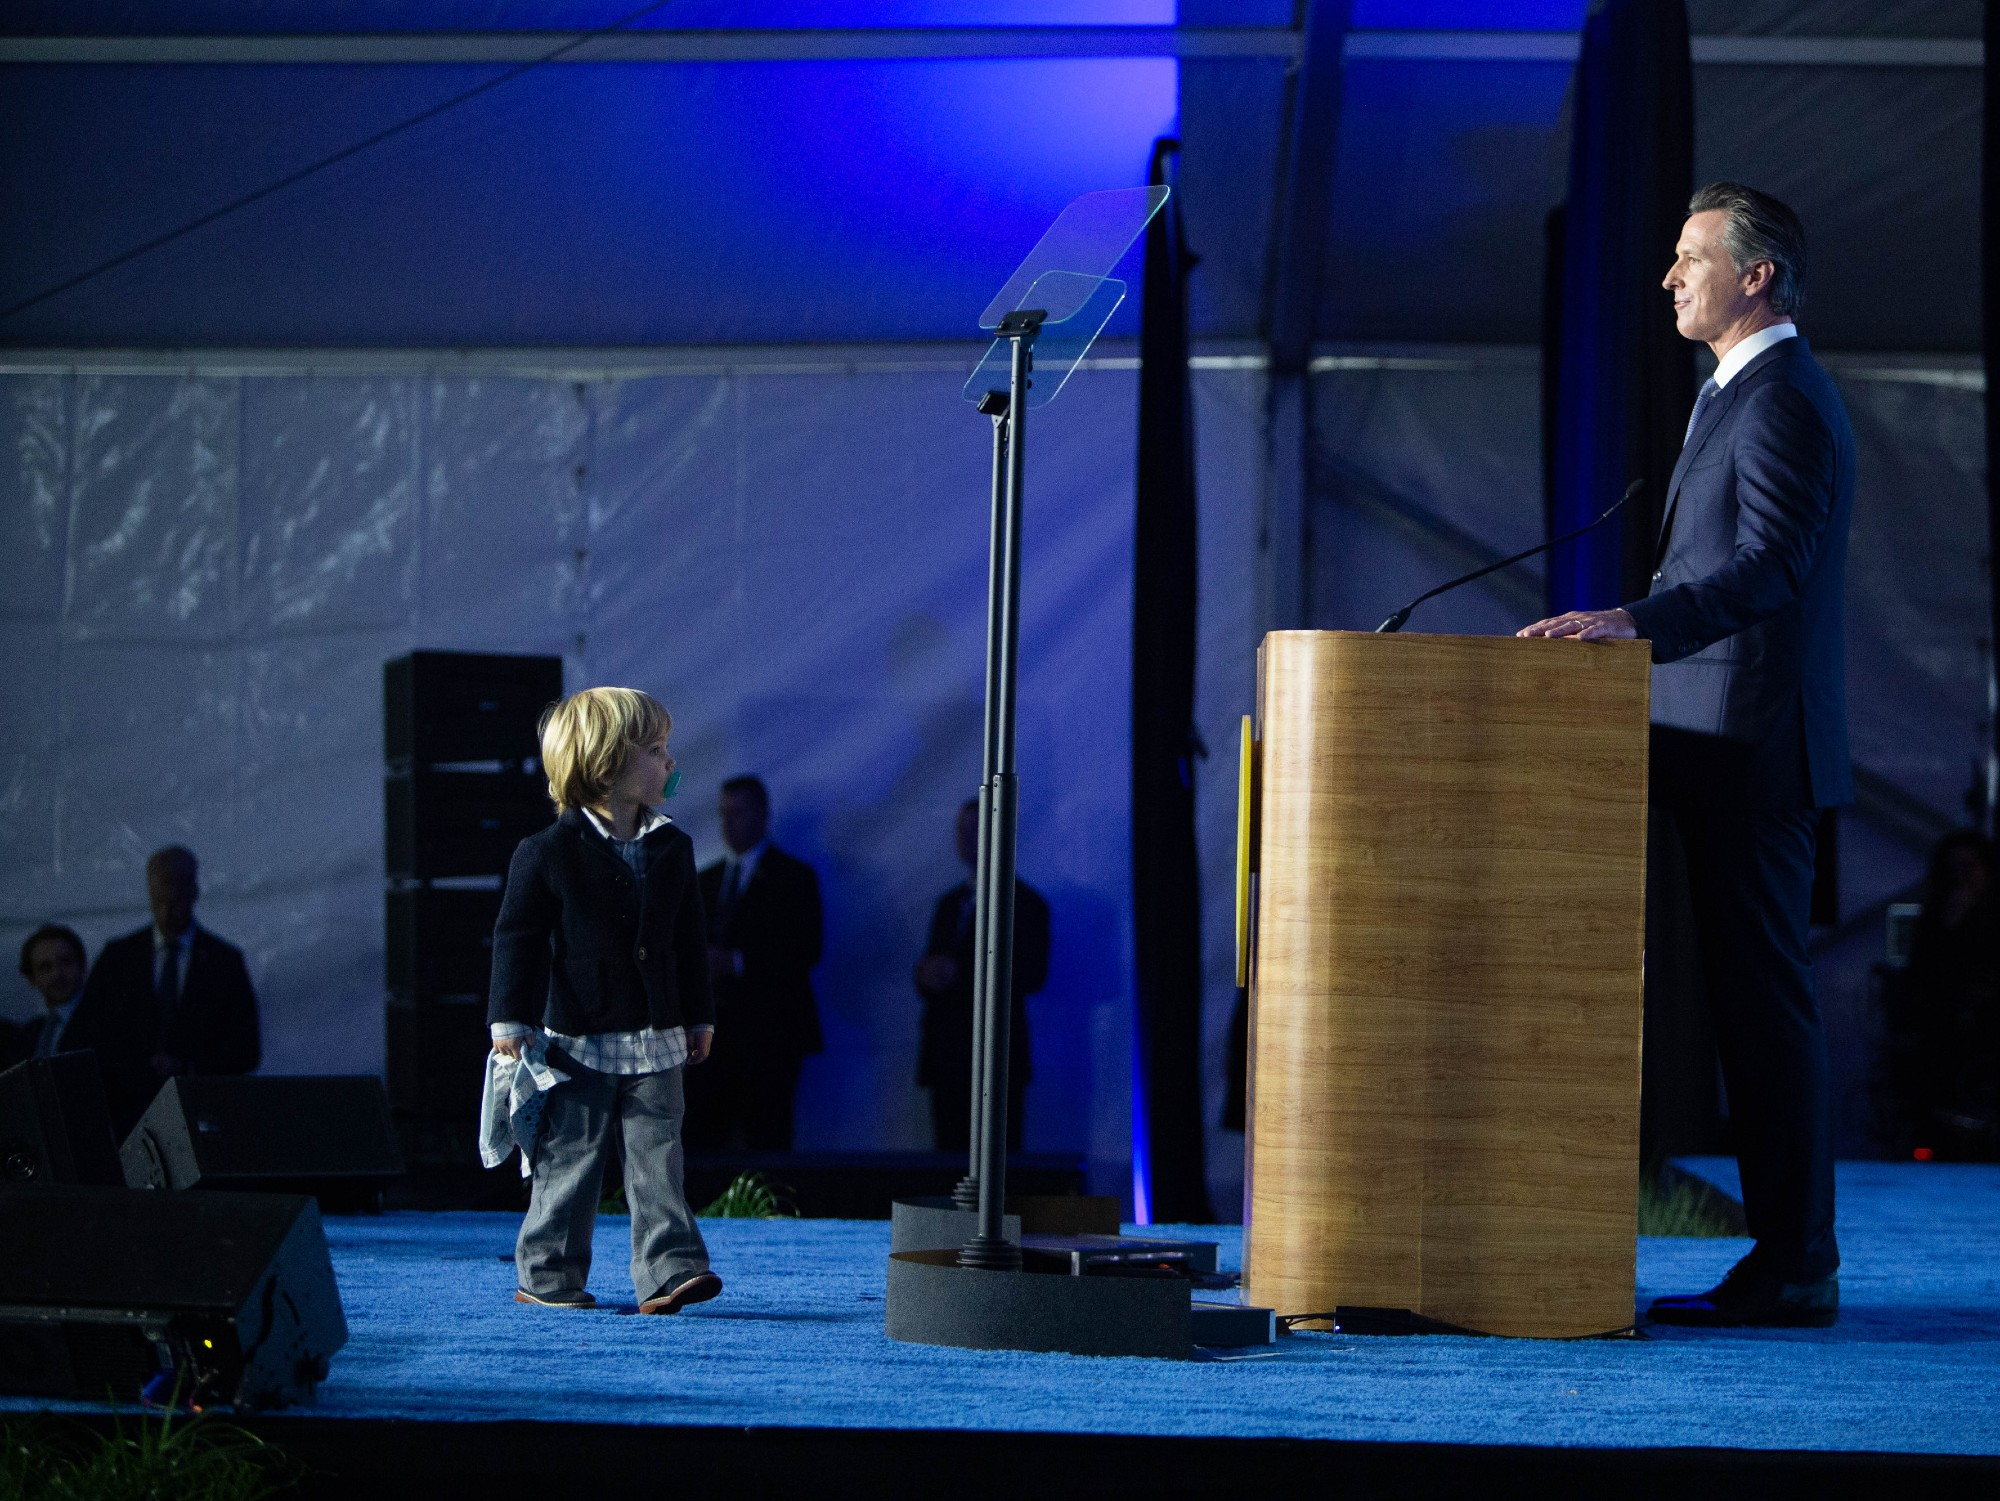 Live Blog: Newsom's 2-Year-Old Son Steals The Show At His